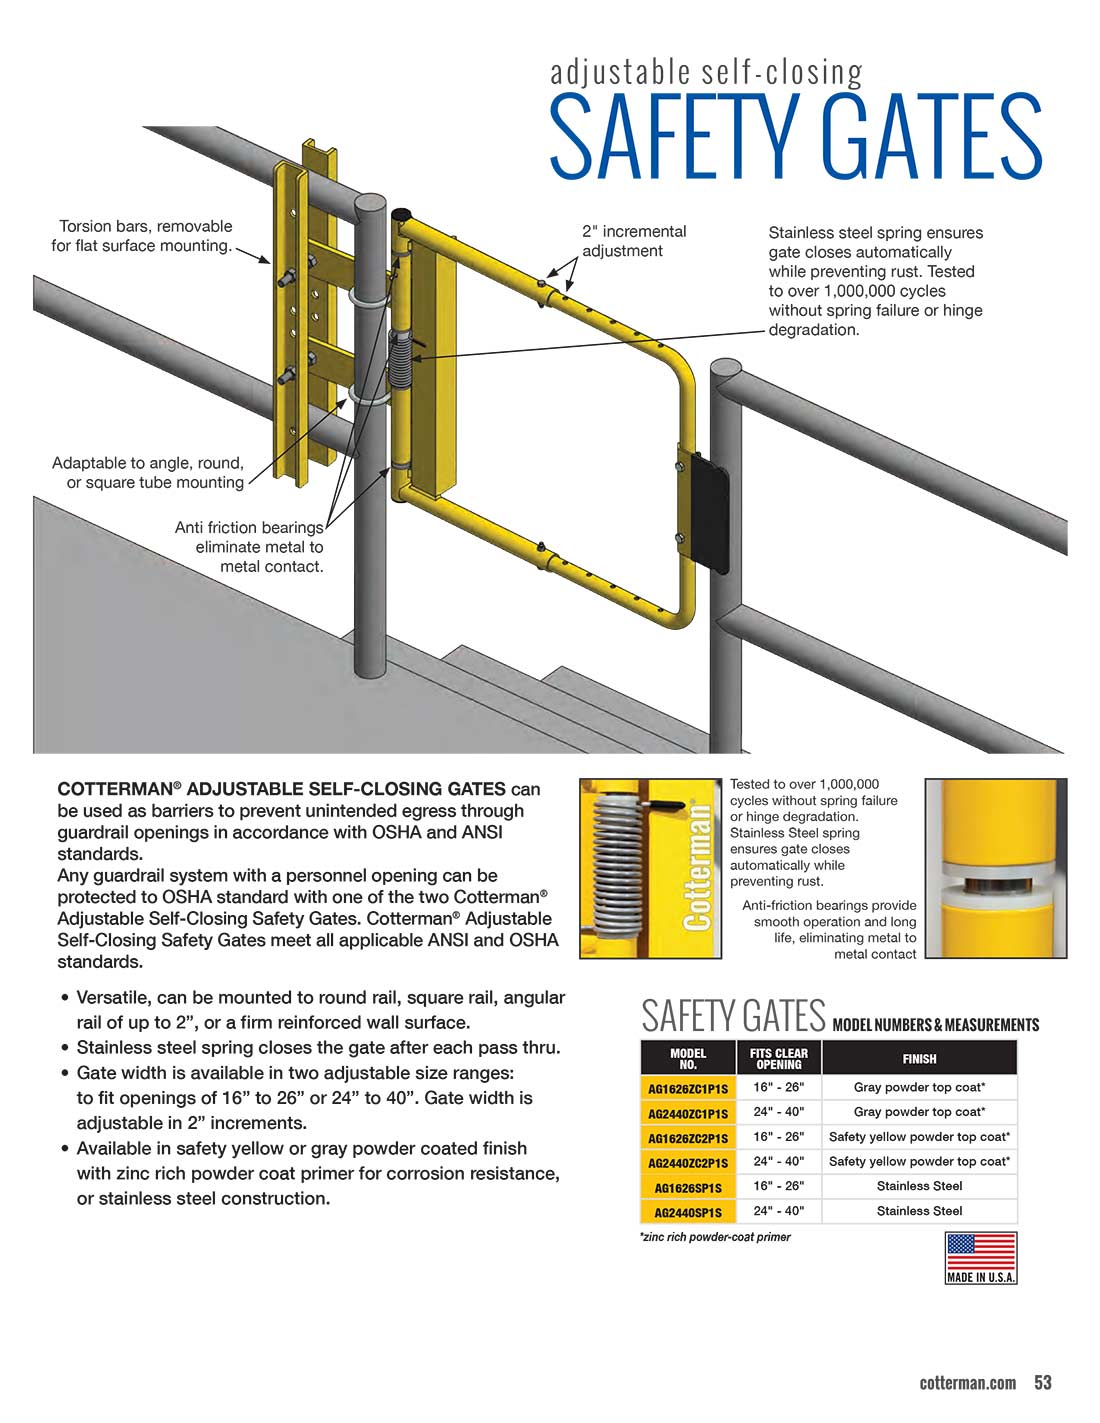 Cotterman Safety Gate Technical Specs